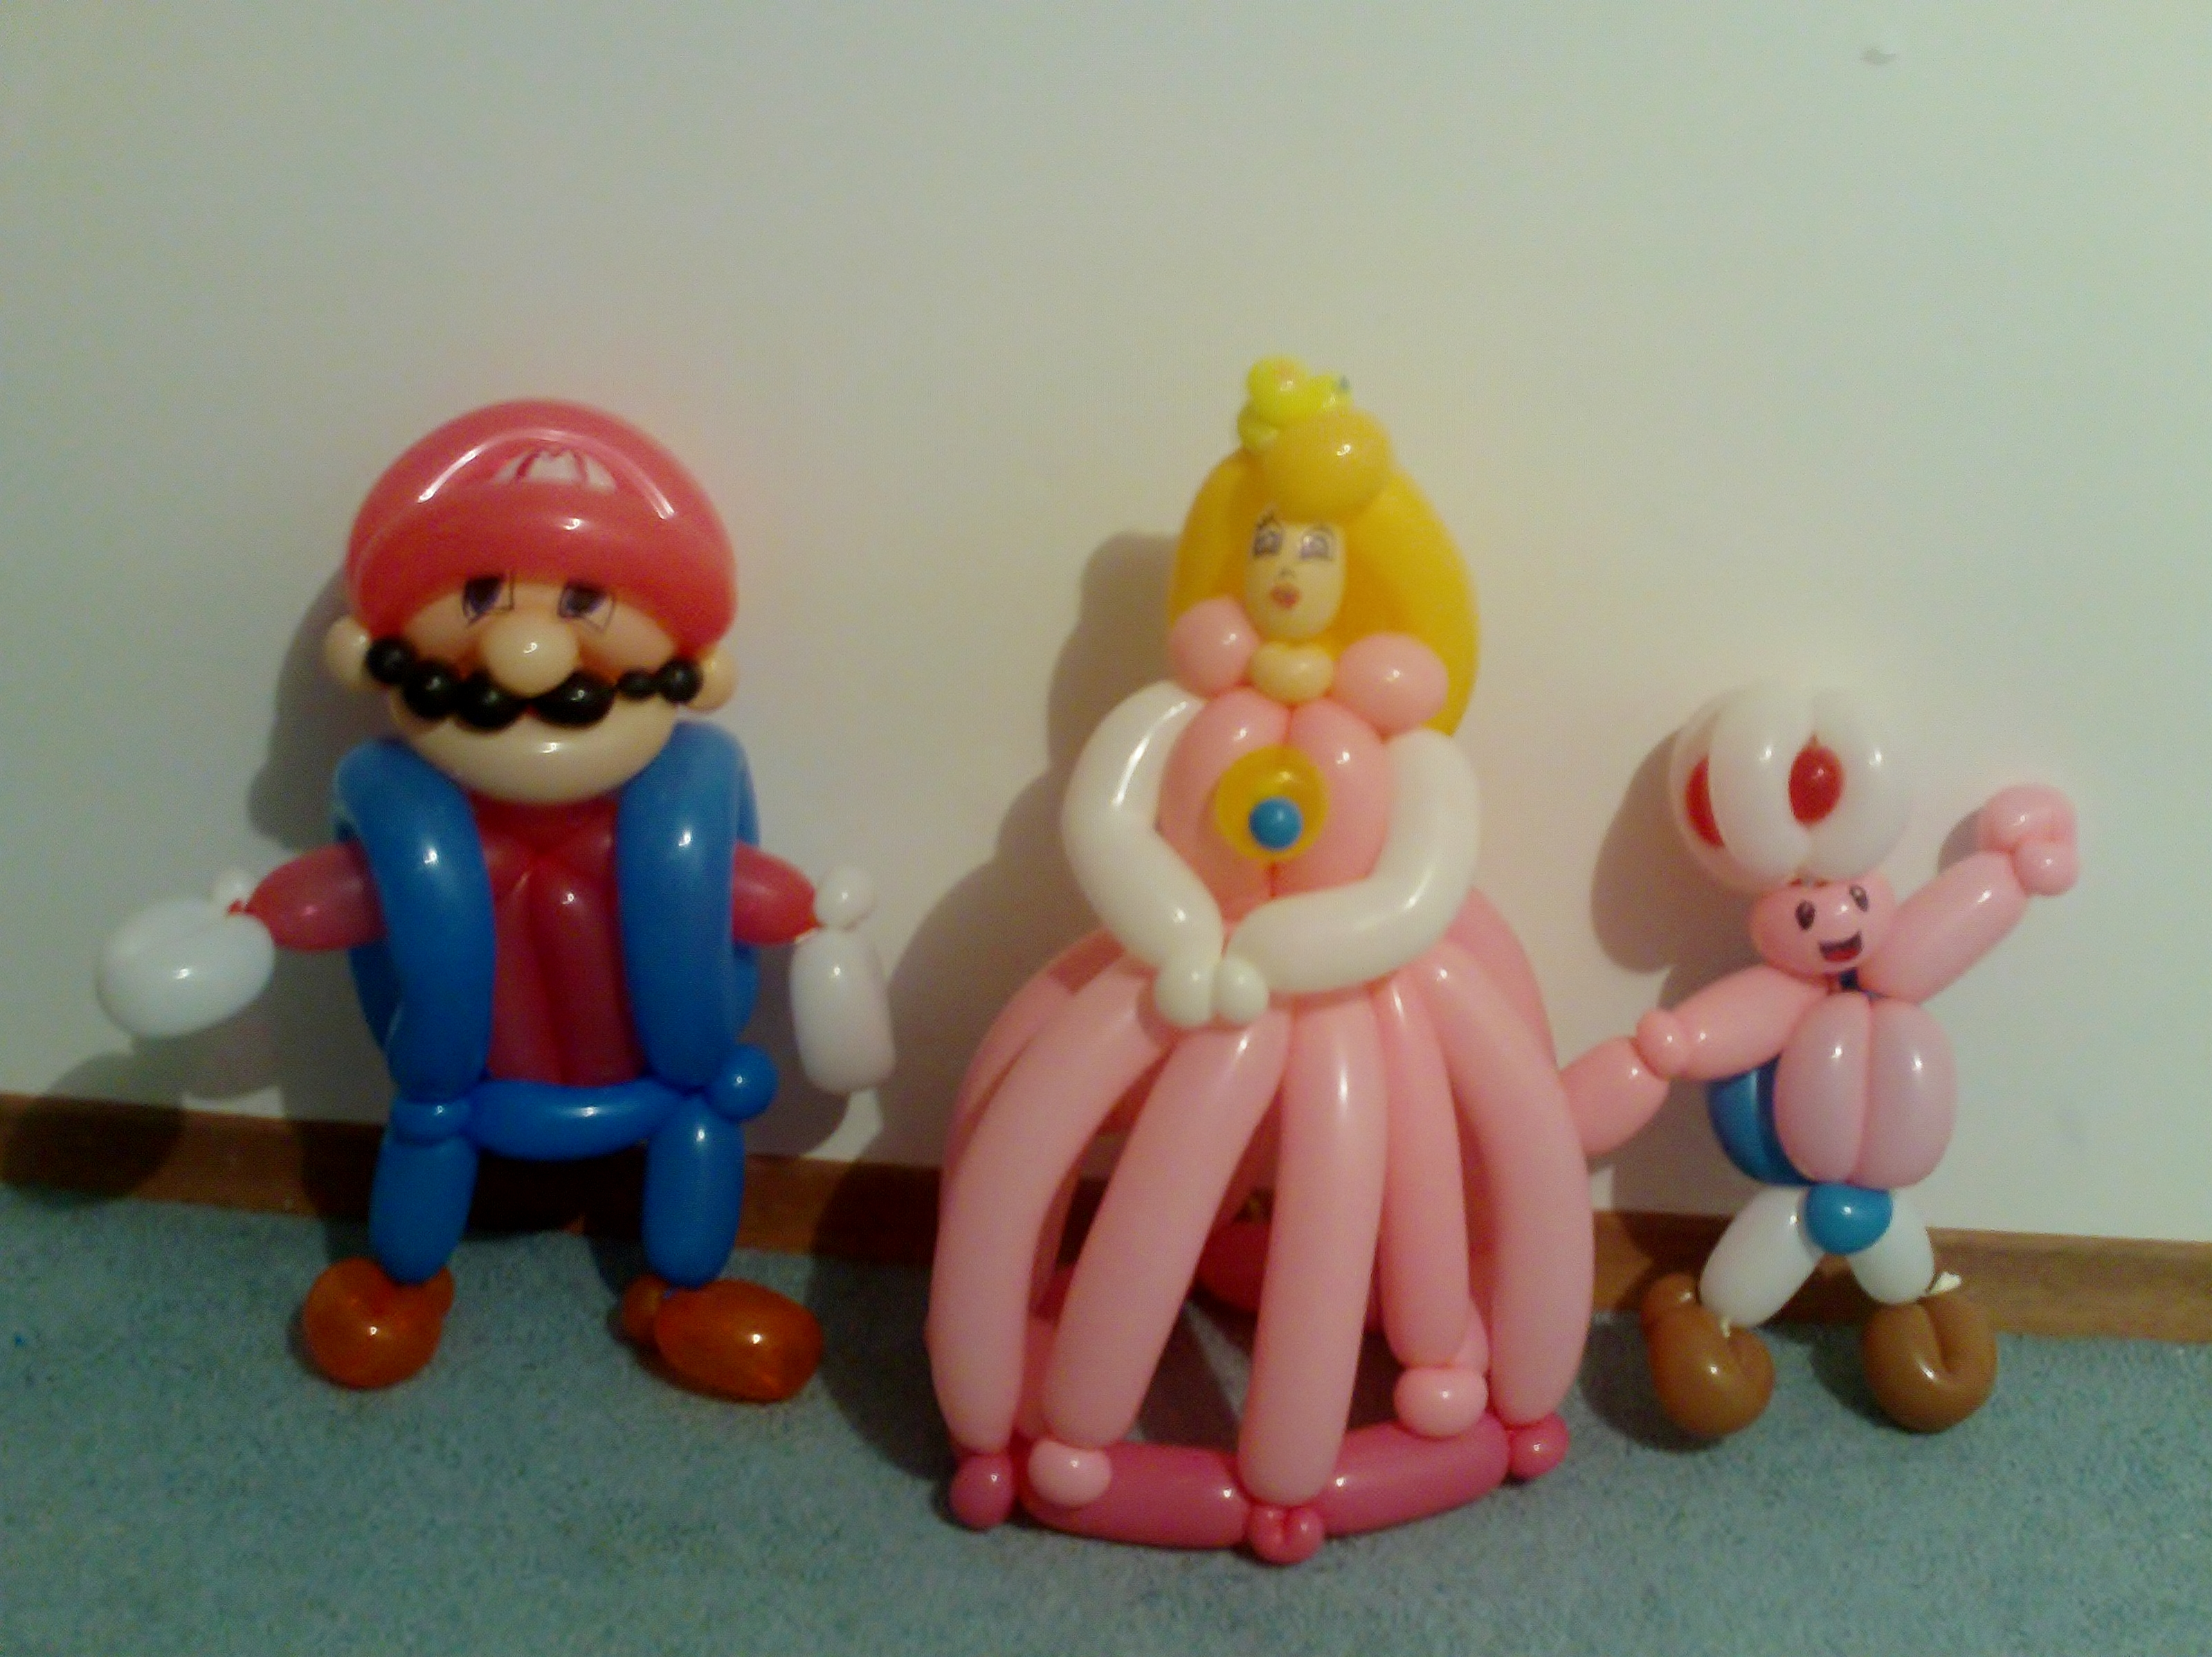 Heroes of the Mushroom Kingdom by TaylorTheAdequate